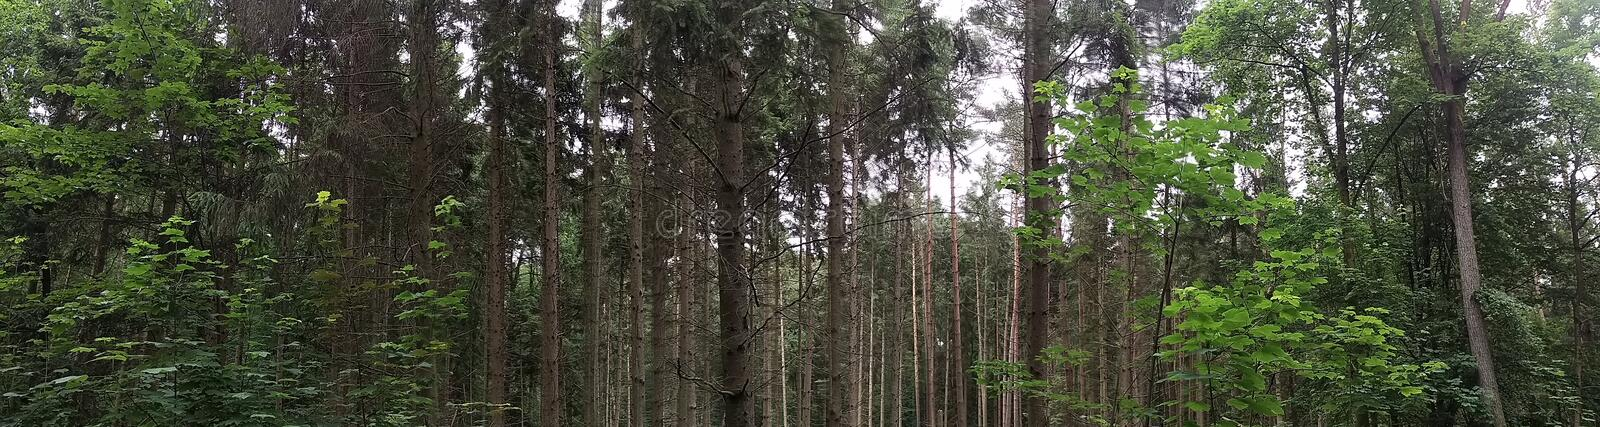 Wald stock photography